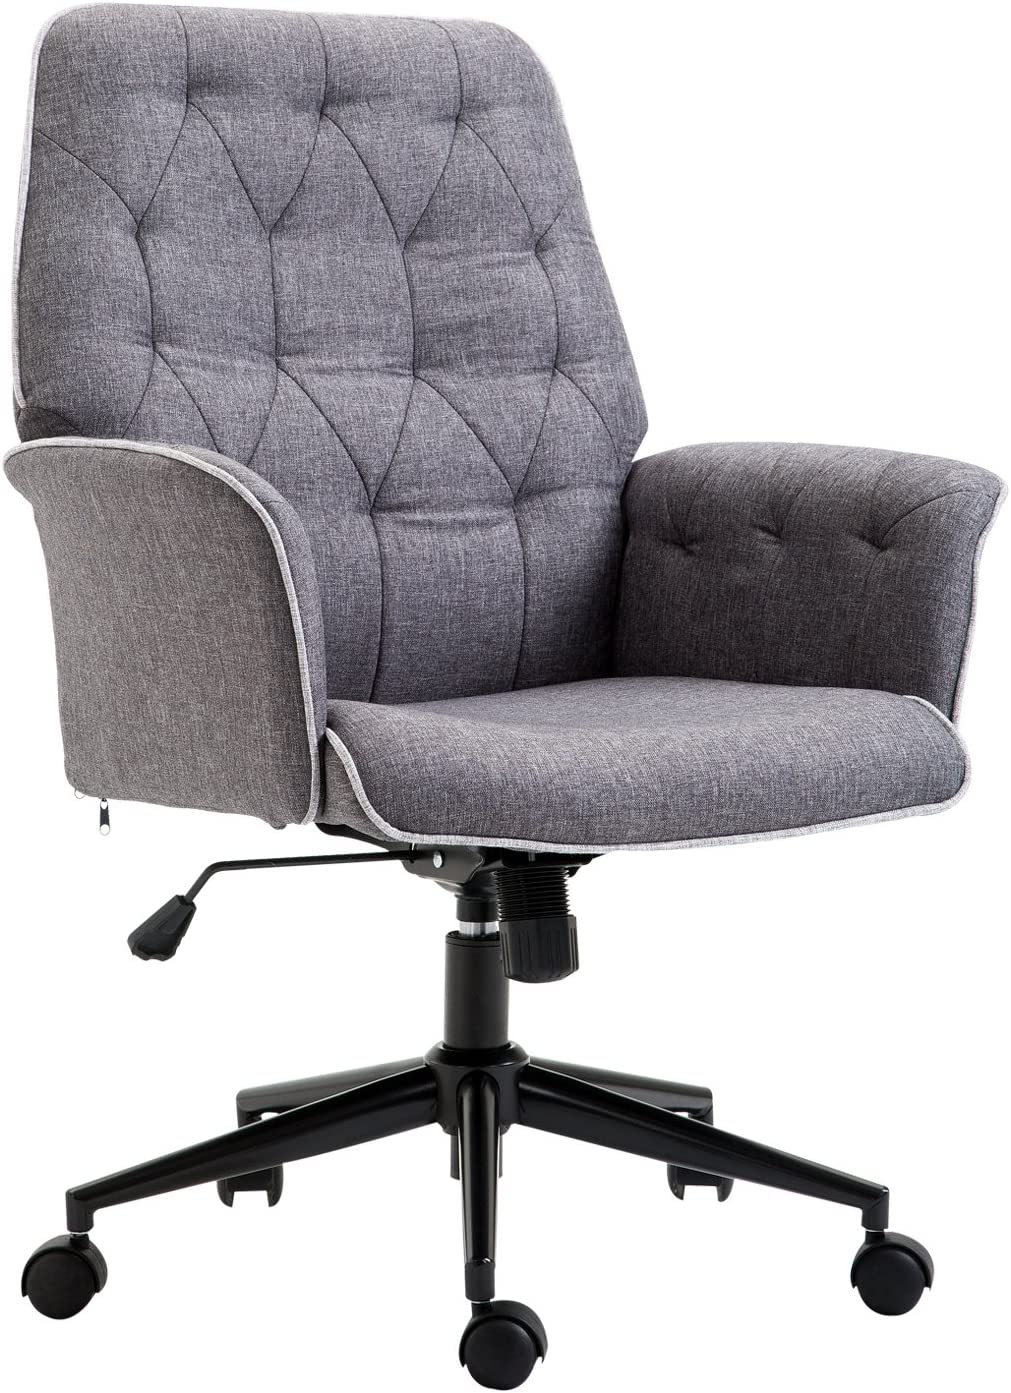 Amazon Com Homcom Vinsetto Modern Mid Back Tufted Linen Fabric Home Office Task Chair With Arms Swivel Adjustable Grey Furniture Decor